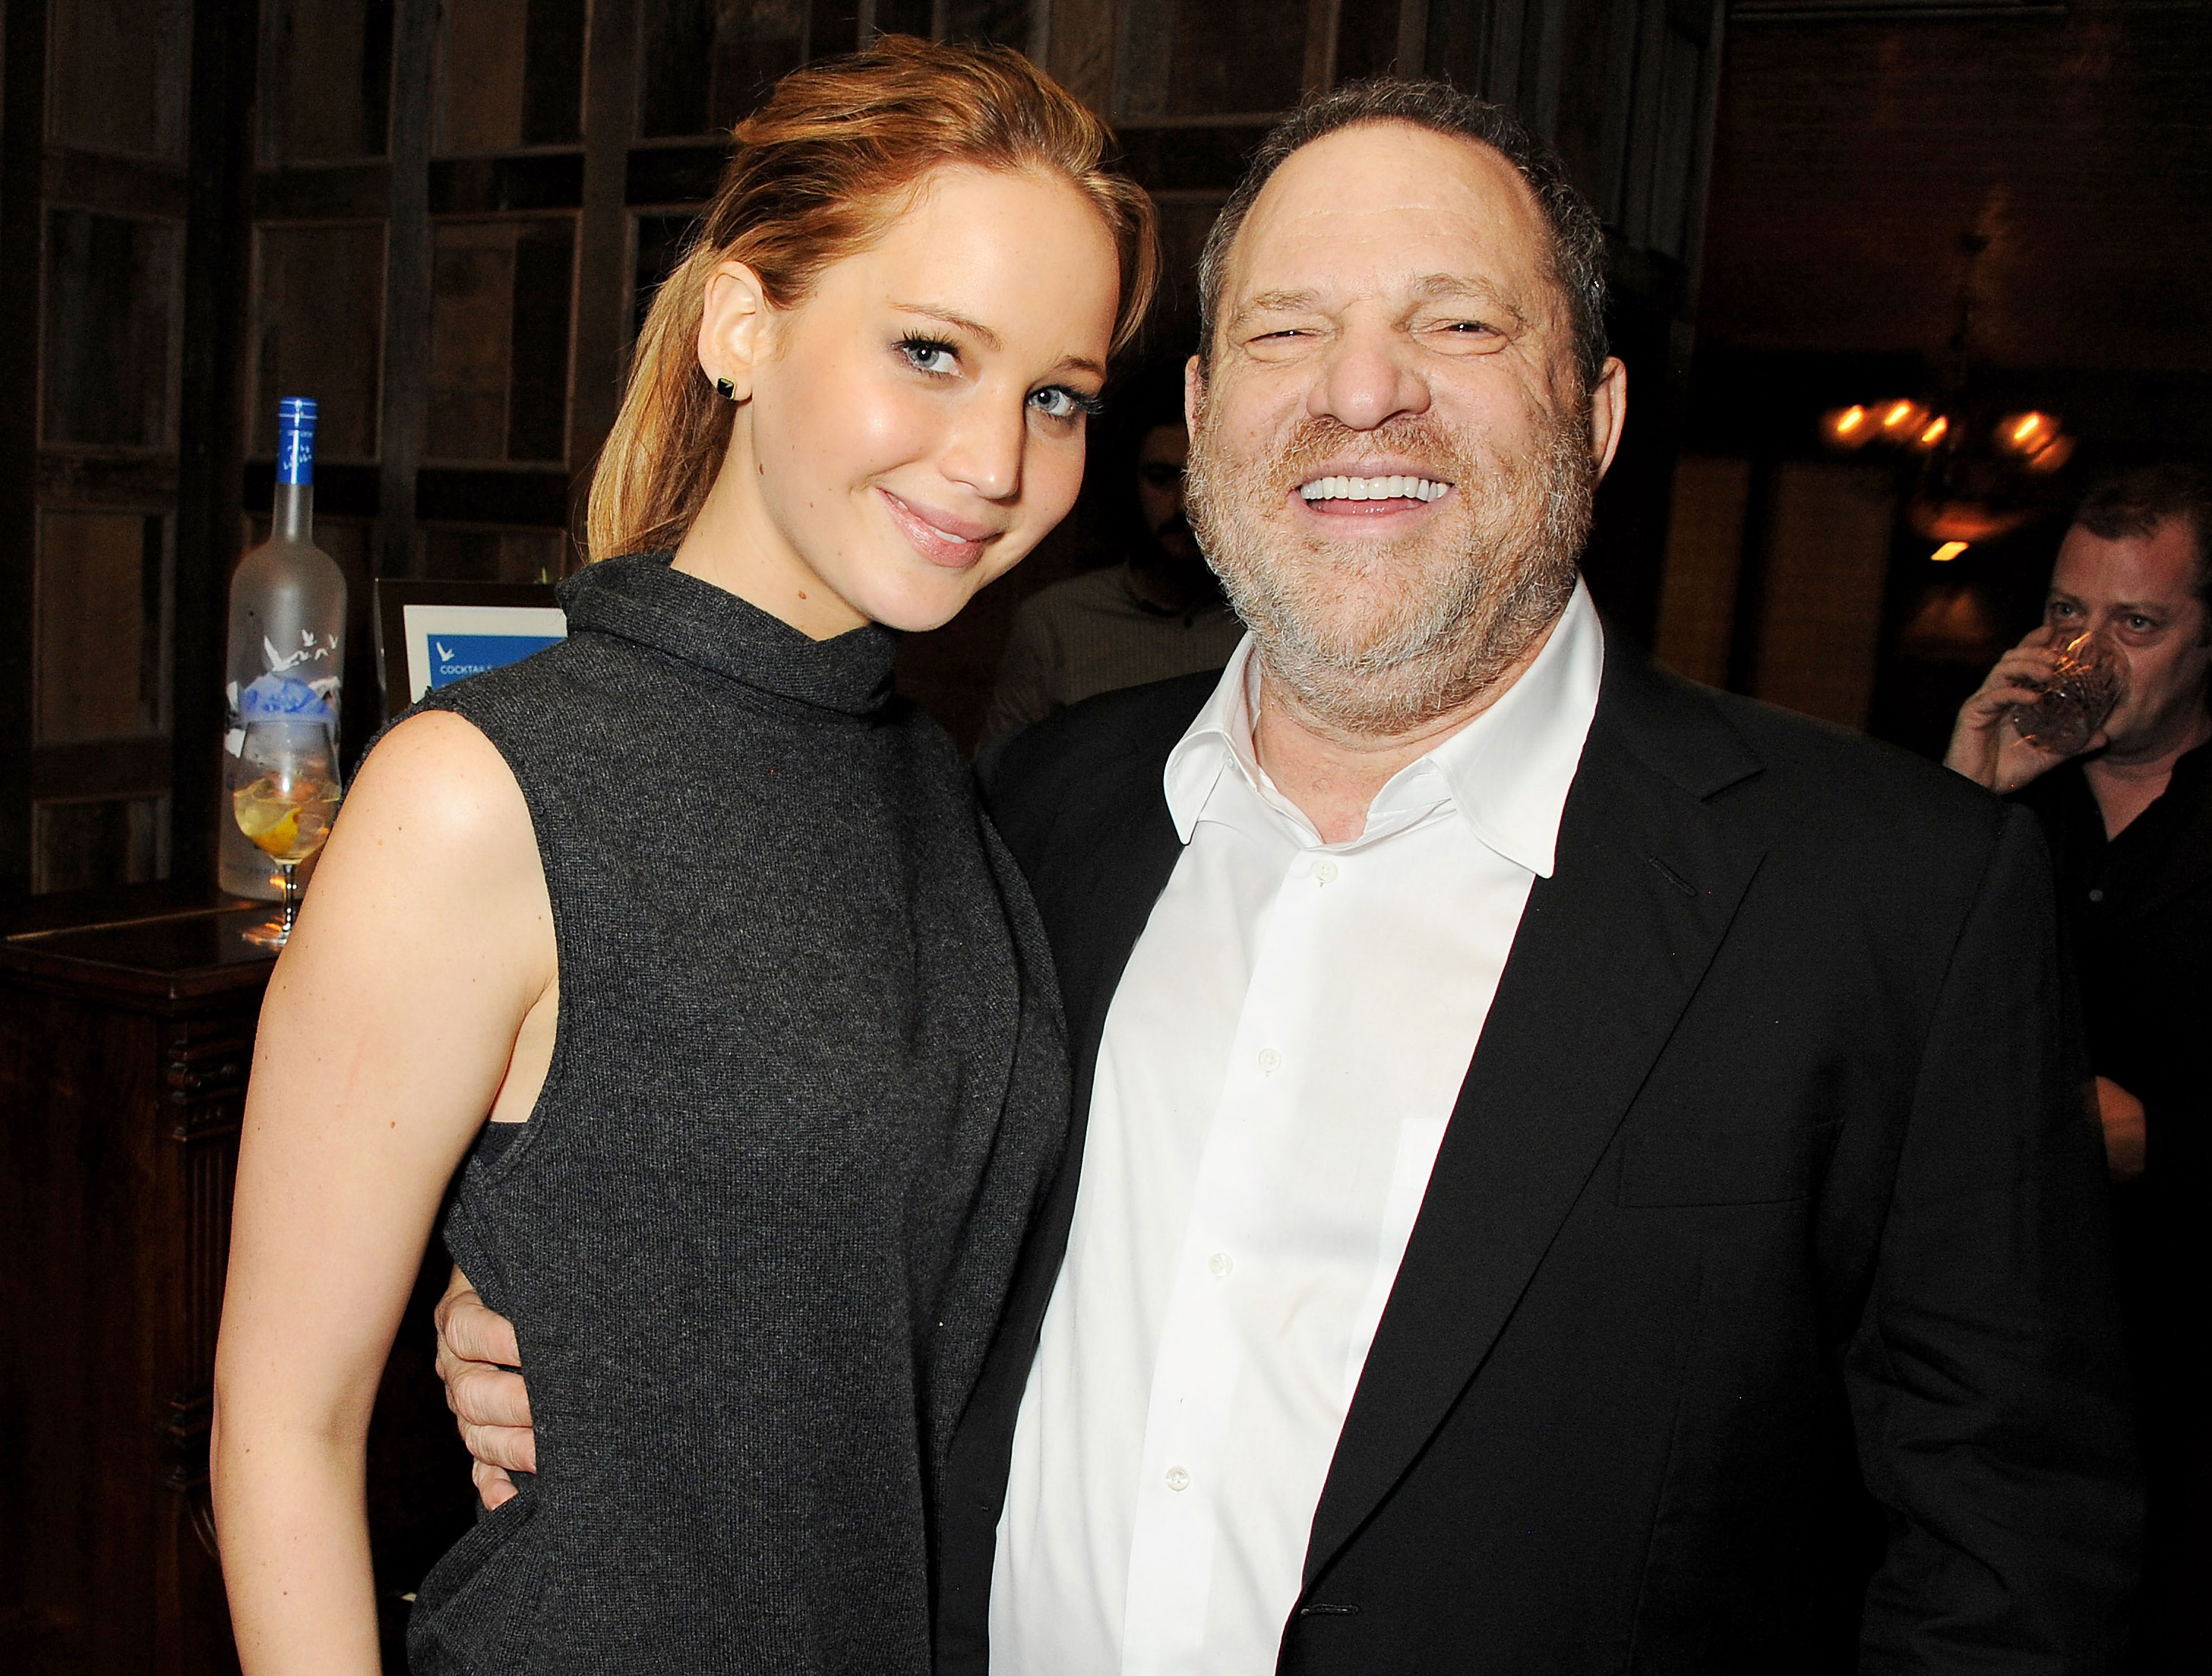 Harvey Weinstein and the Real truth about the Hollywood Casting Couch